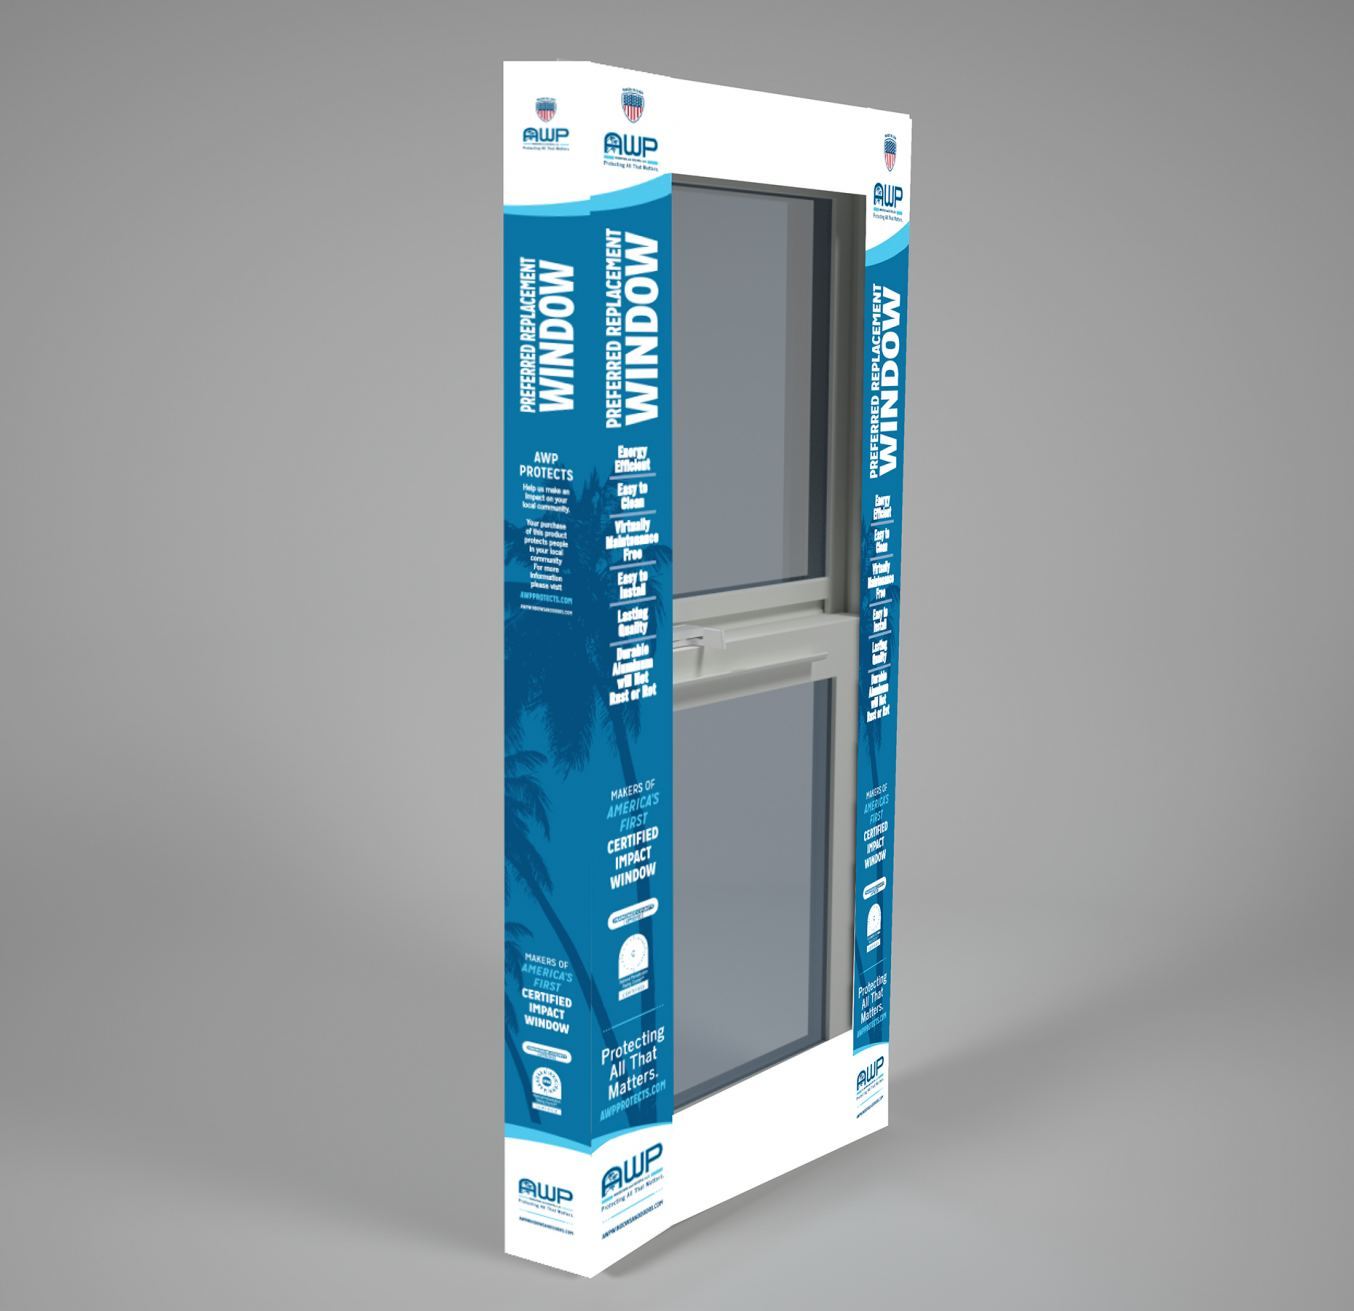 Awp Windows And Doors Announces New Packaging Design